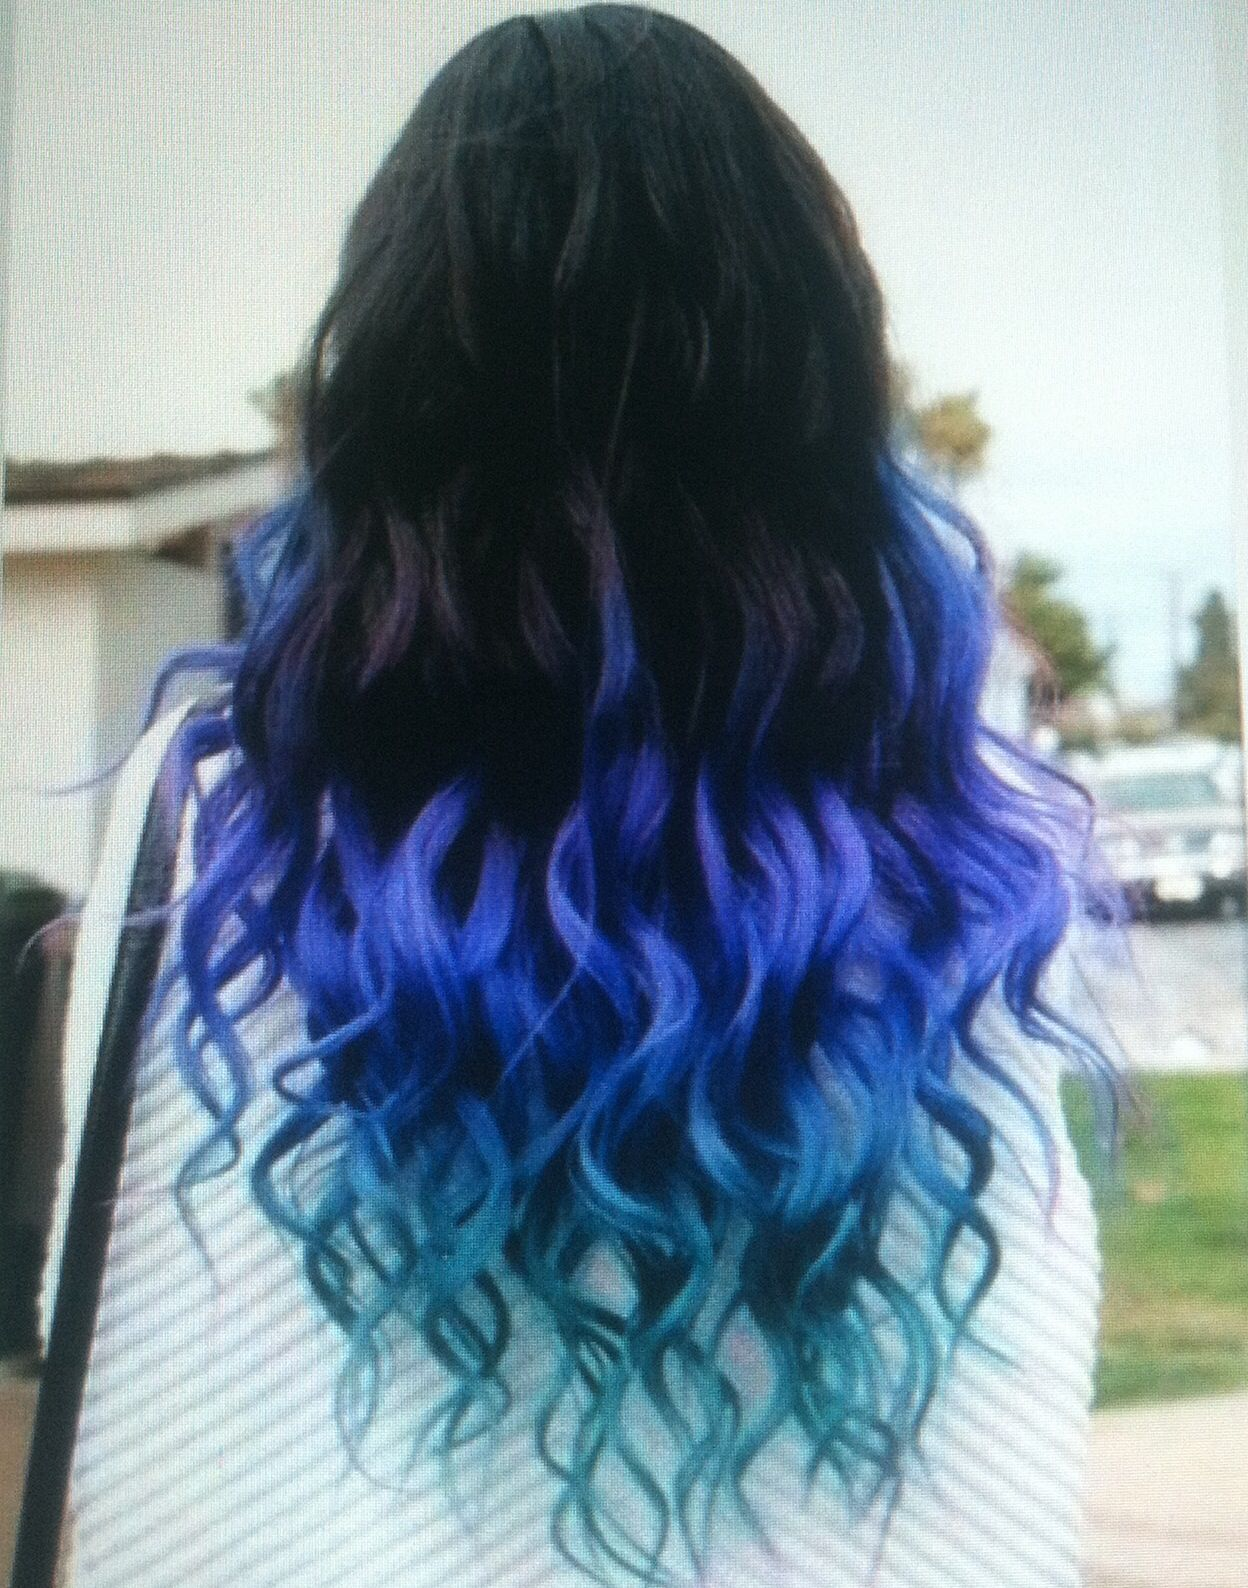 Colored Tips With Images Cute Hair Colors Colored Hair Tips